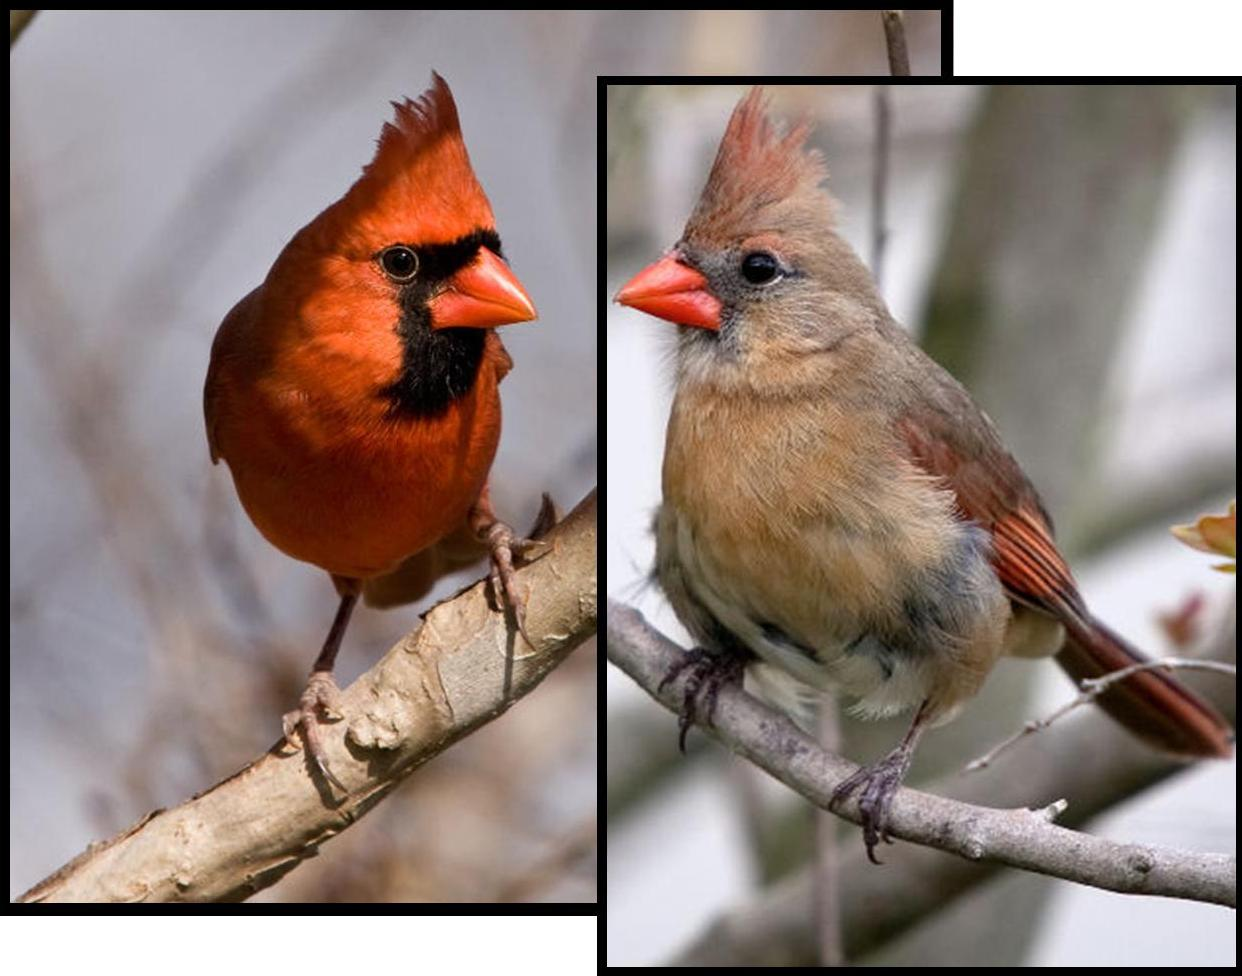 An Old Feisty Female Cardinal Bit the Same Scientist